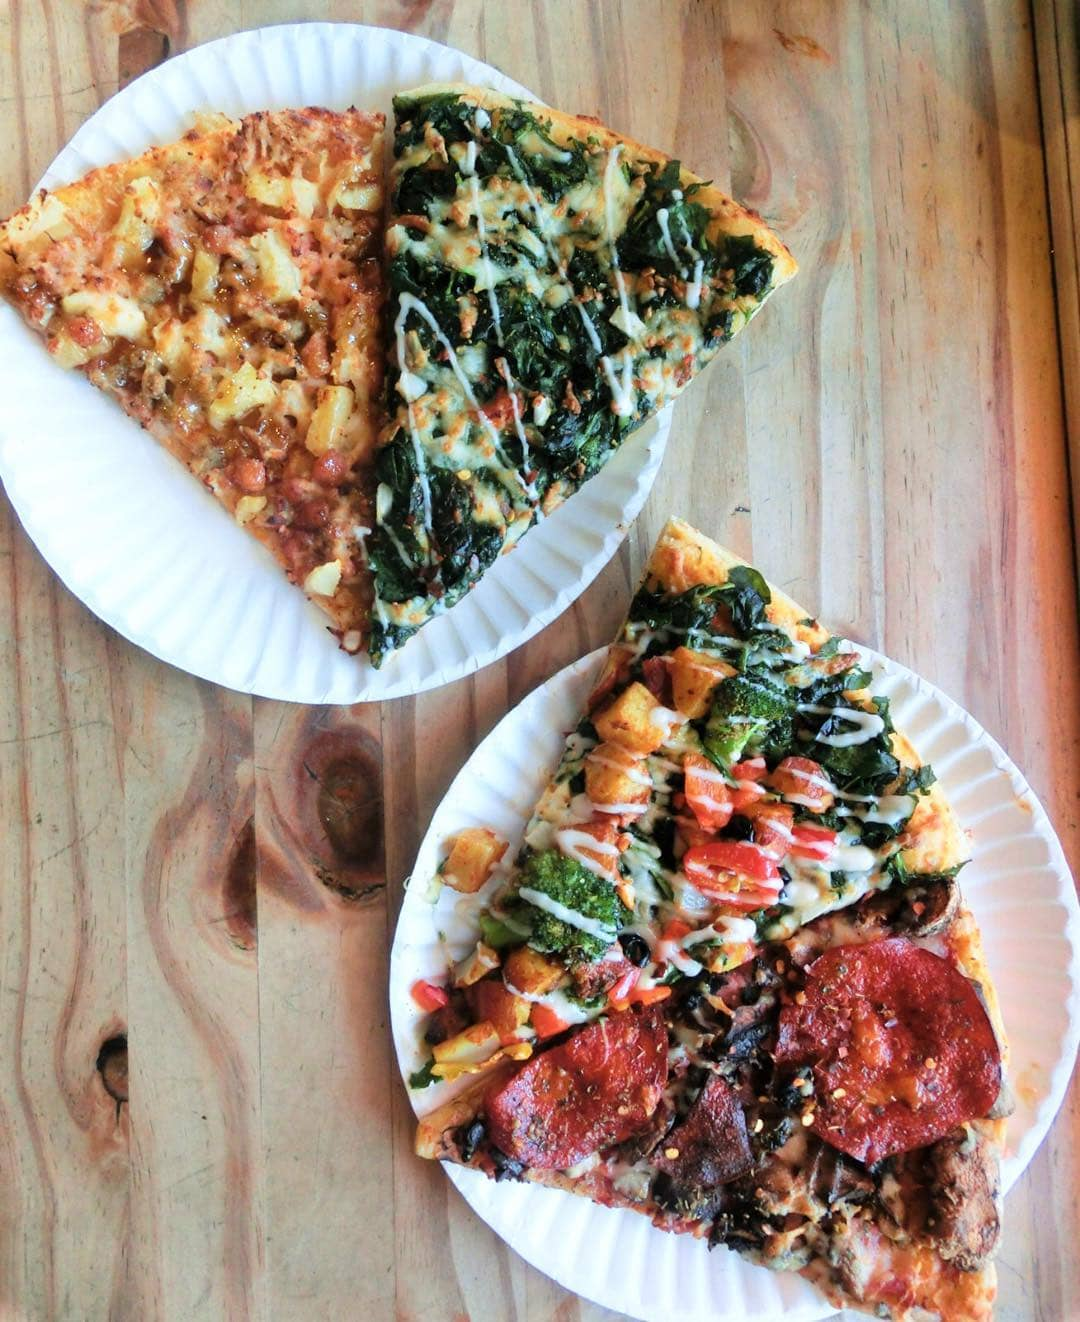 Noms Mag commercial drive neighbourhood guidebook fire pizza